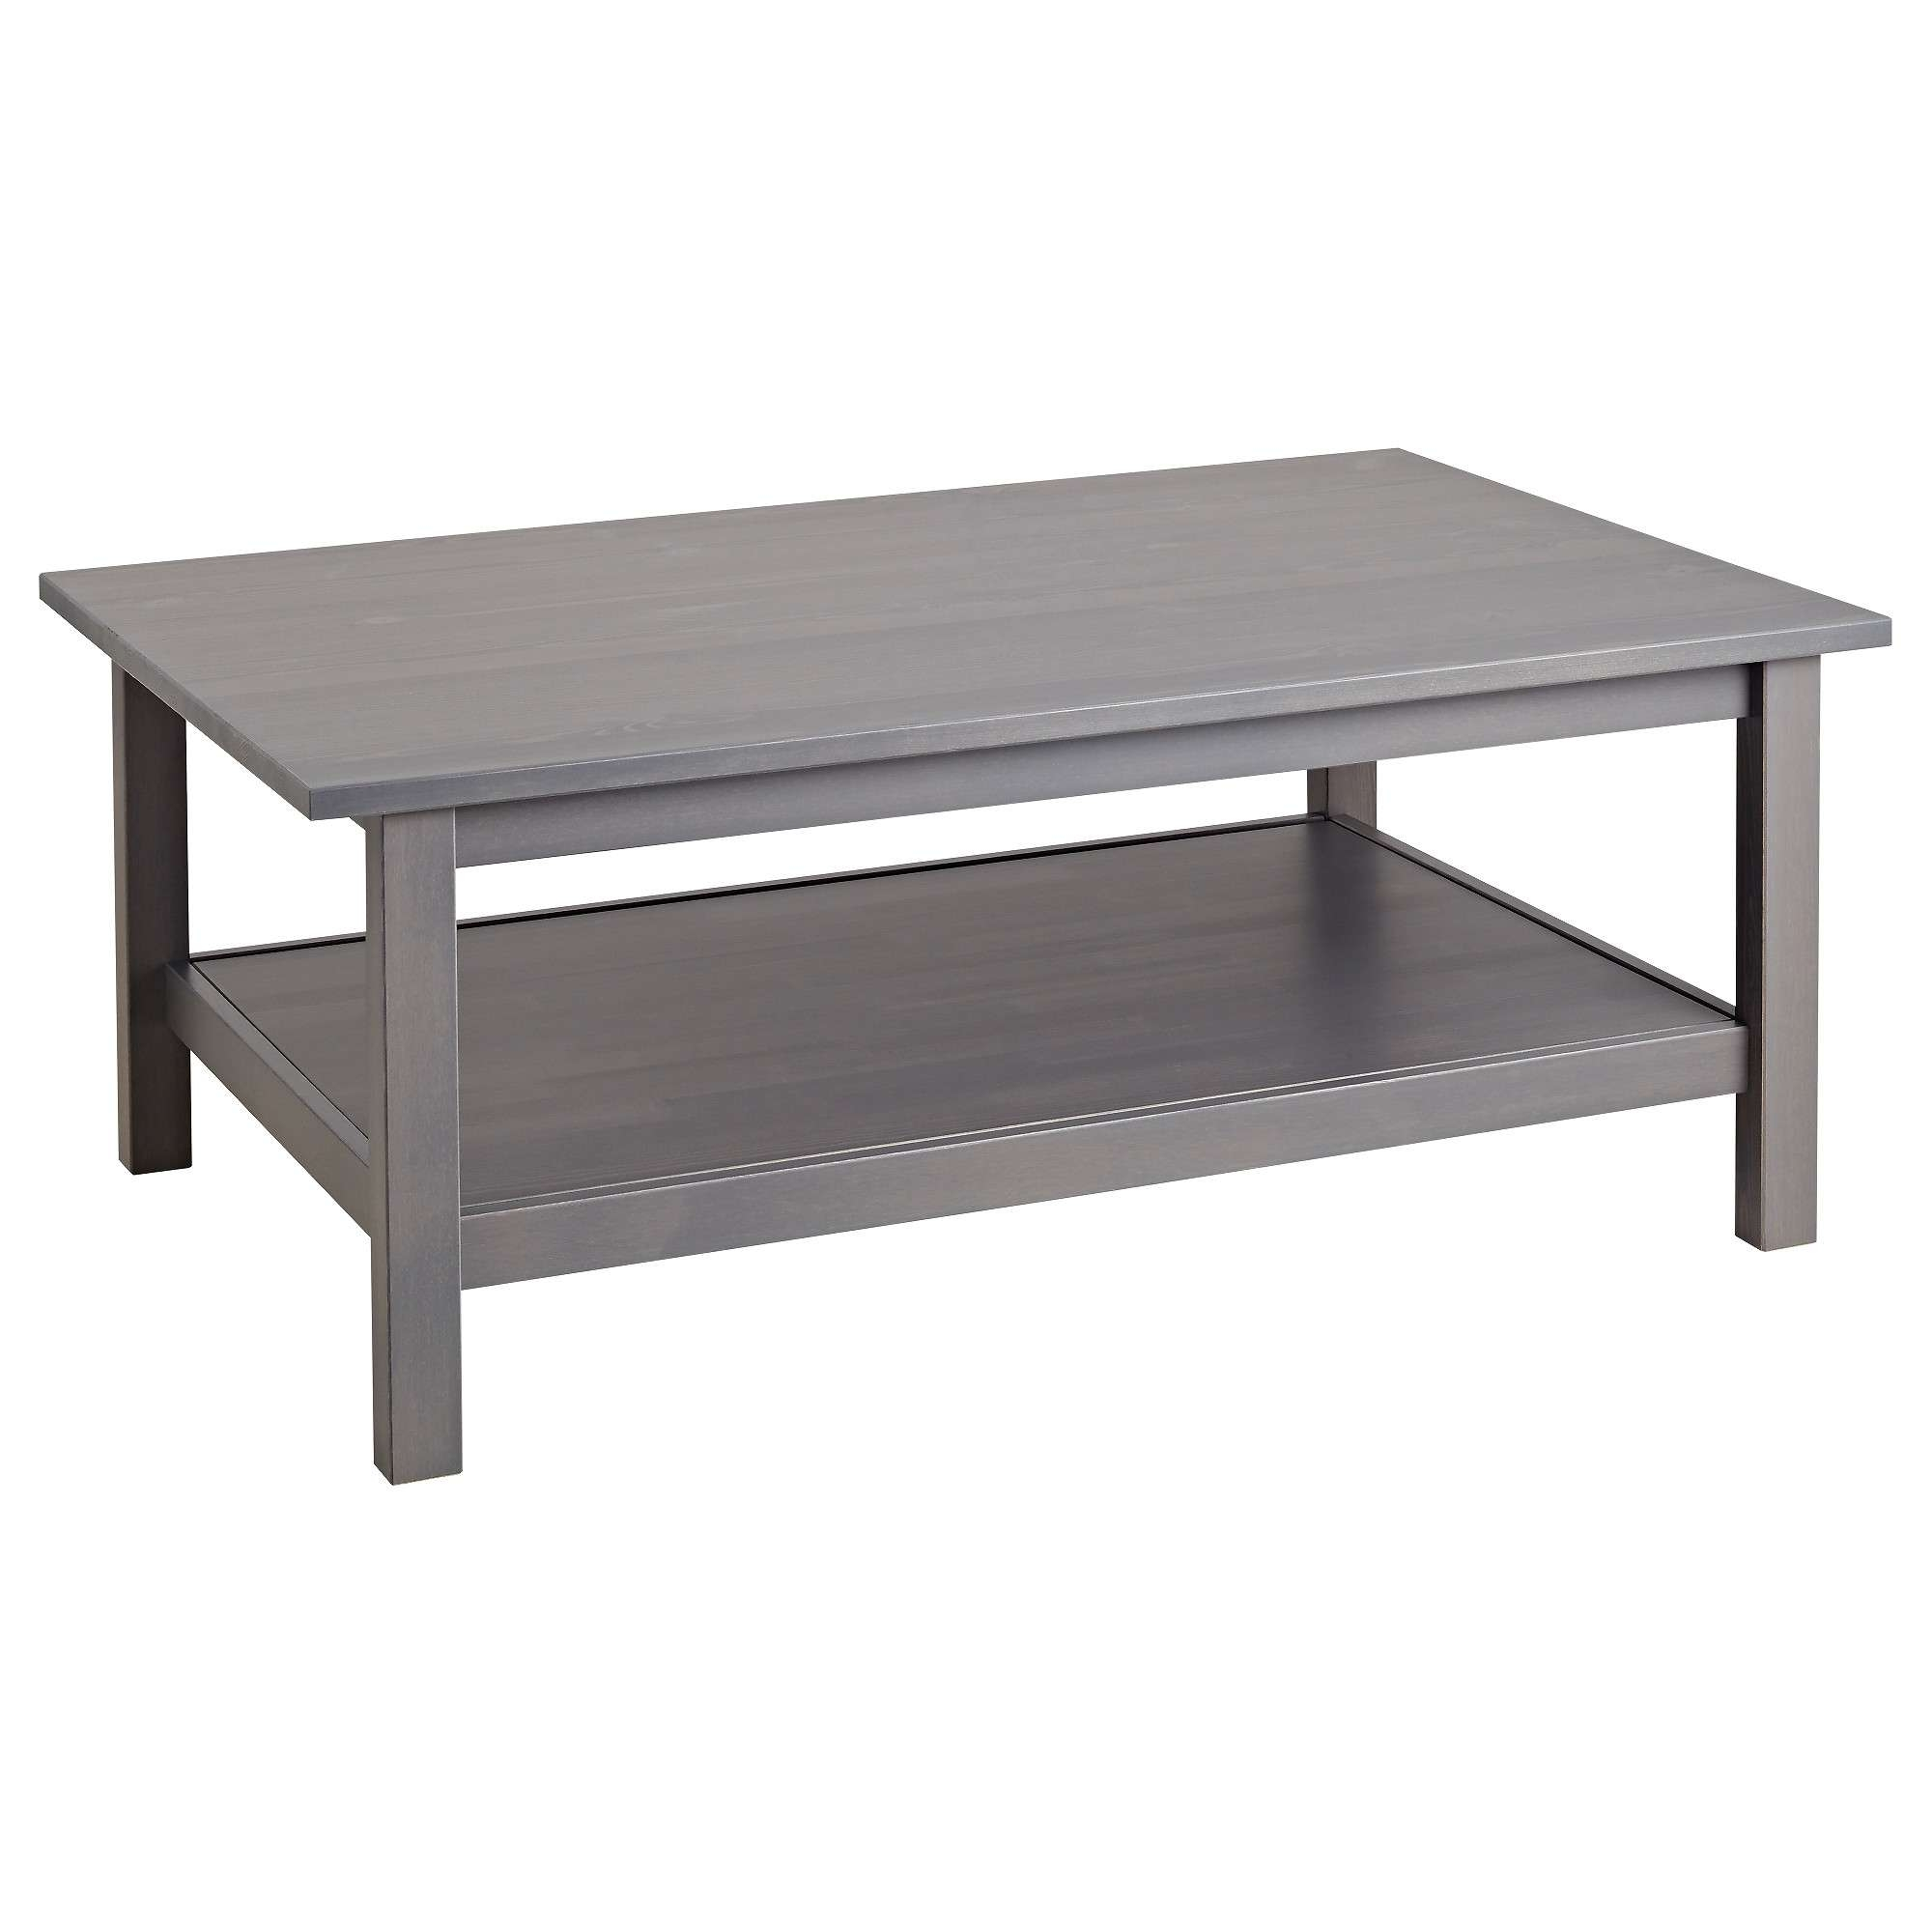 Hemnes Coffee Table – Dark Gray Stained – Ikea With Regard To Well Known White And Black Coffee Tables (View 7 of 20)